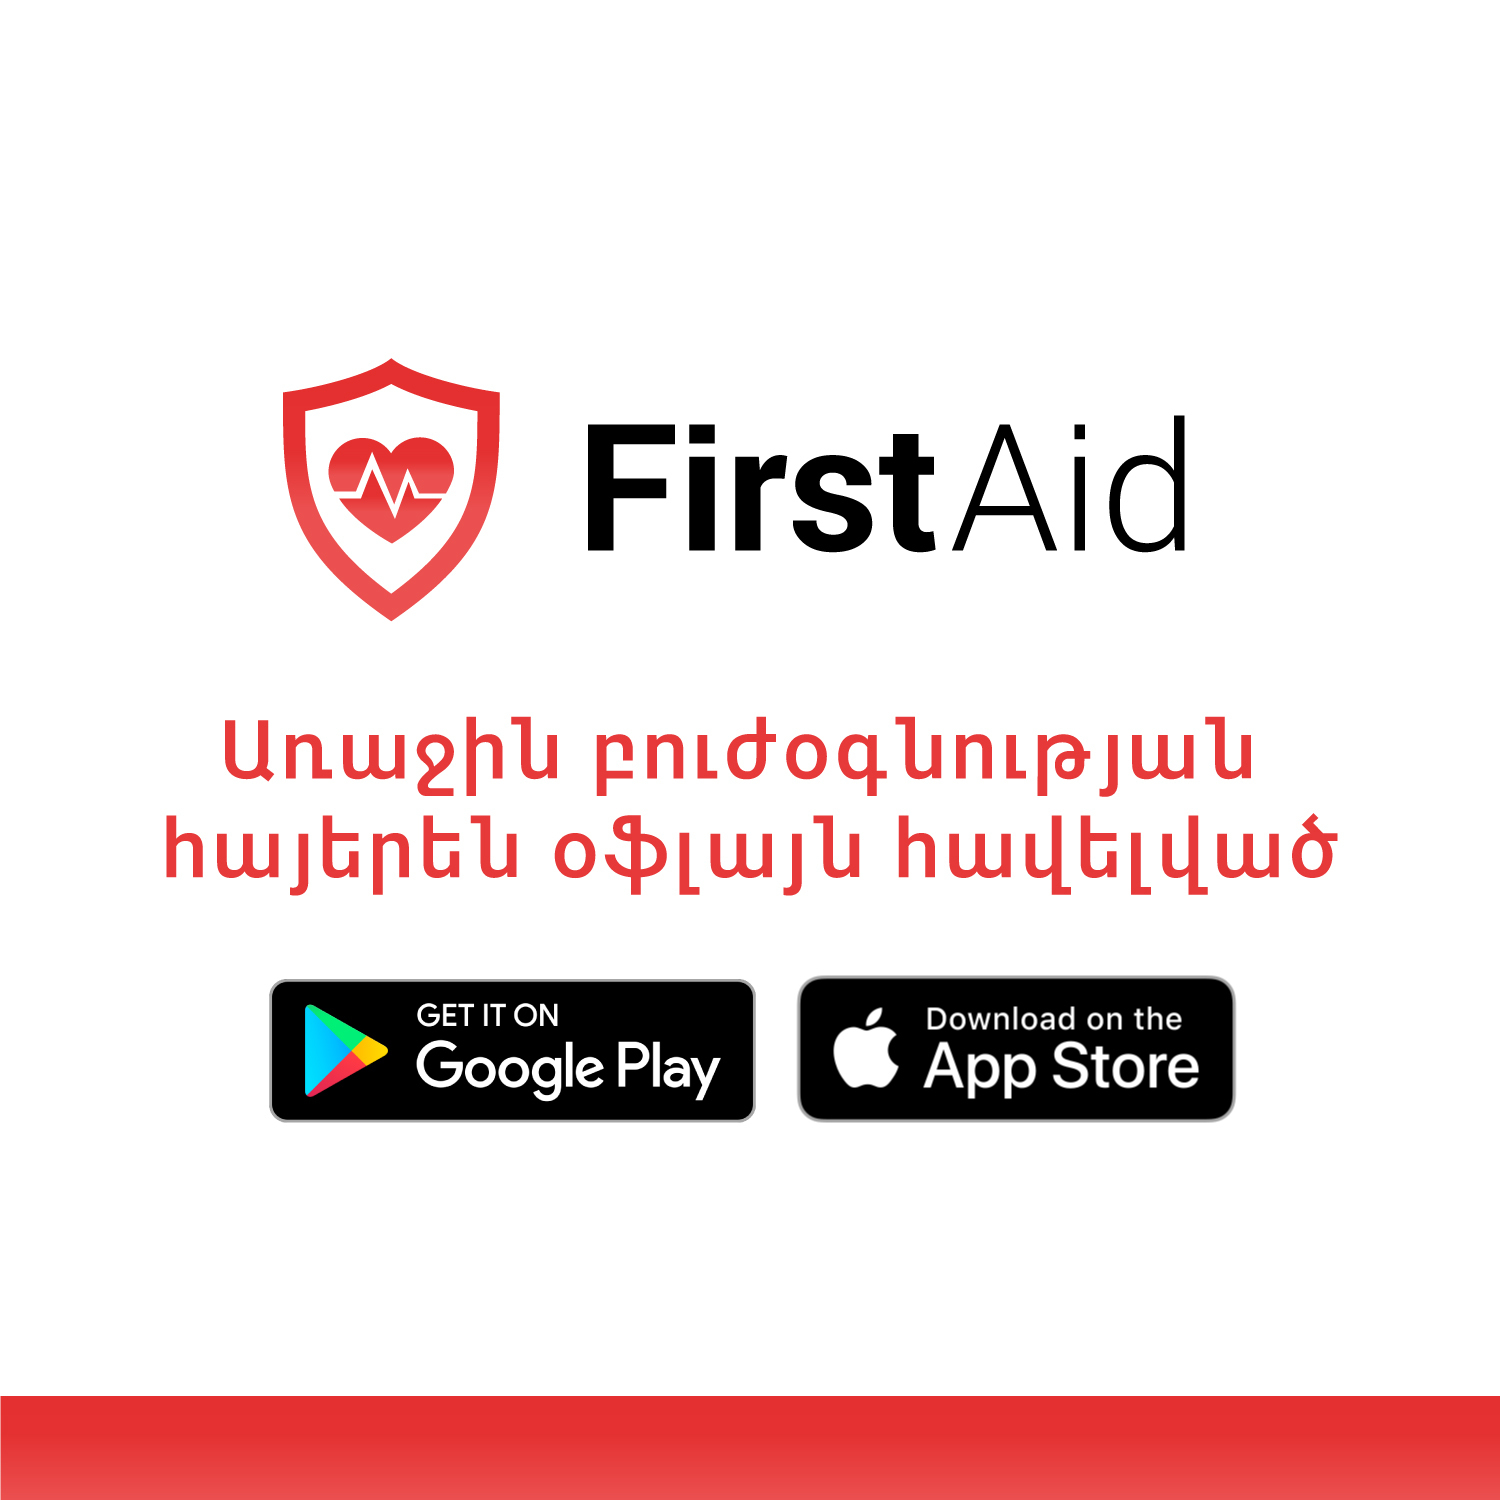 First Aid application